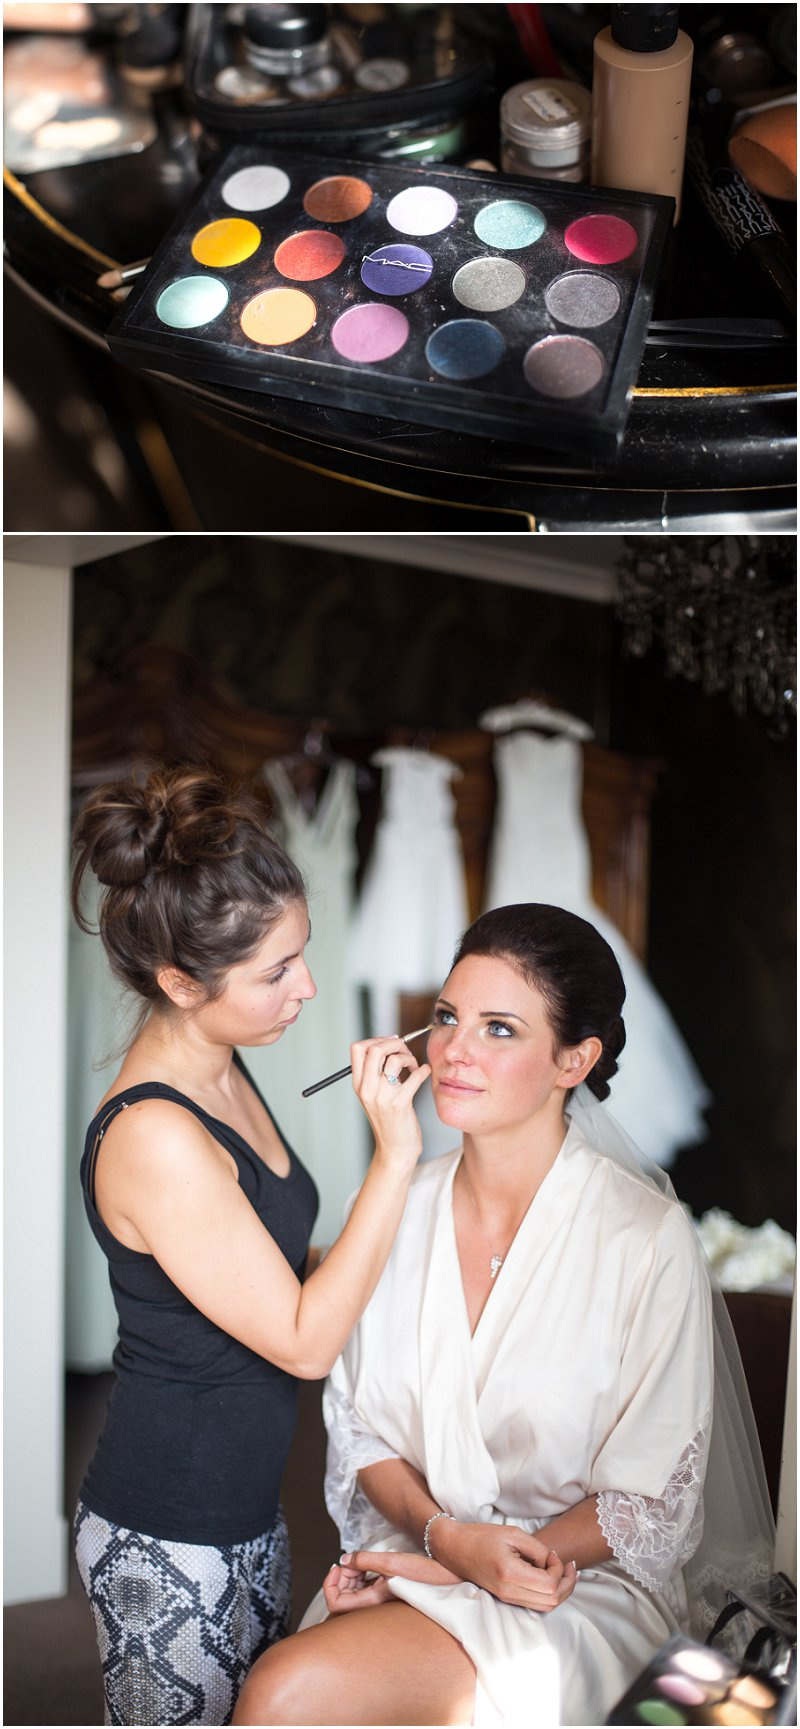 Mac Makeup being applied to bride at Eaves Hall Wedding